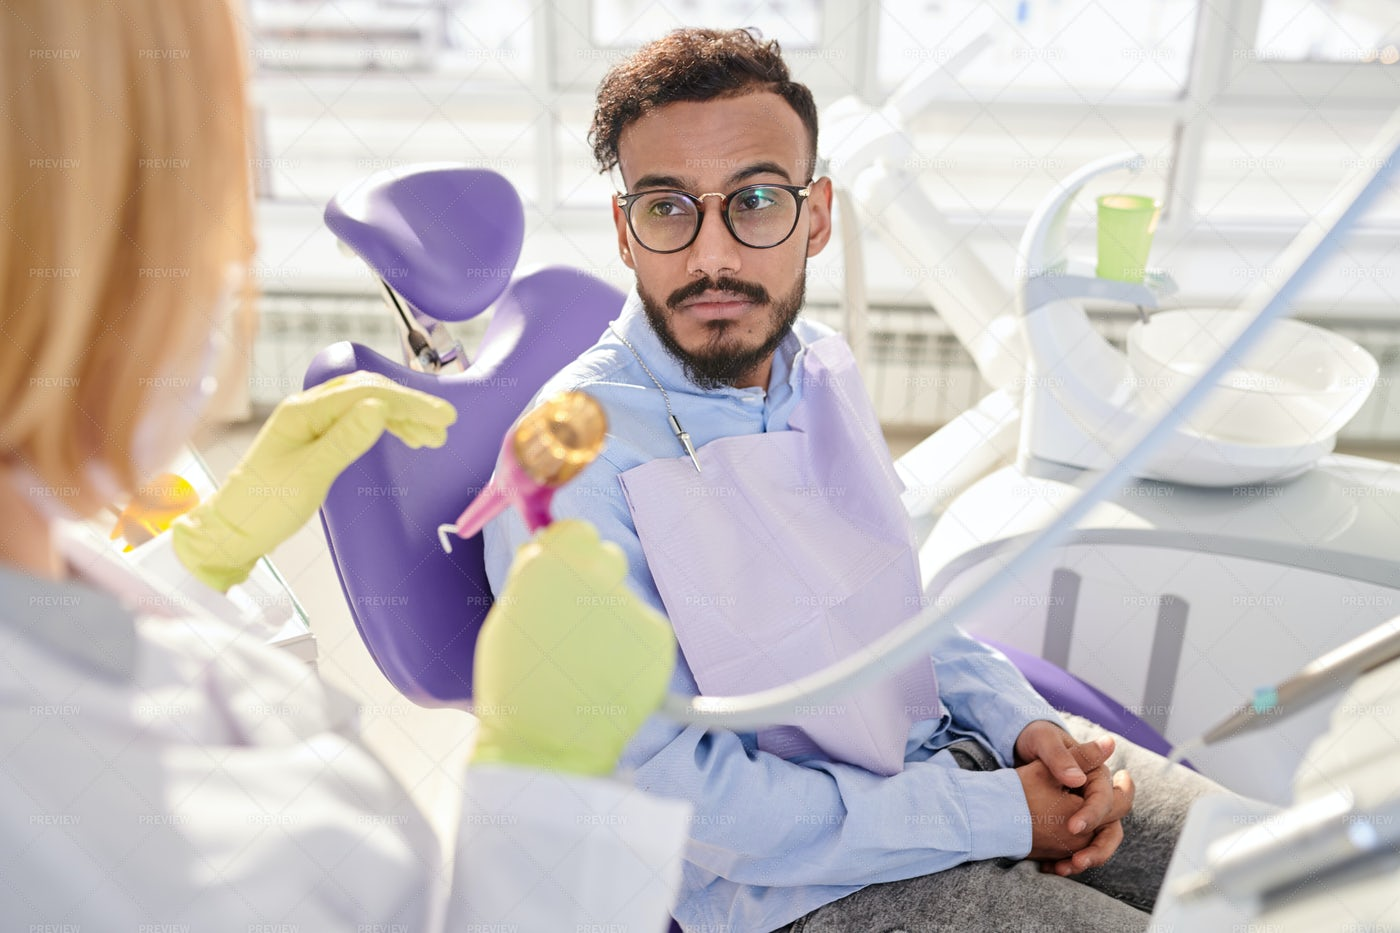 Young Patient Waiting For Procedure: Stock Photos